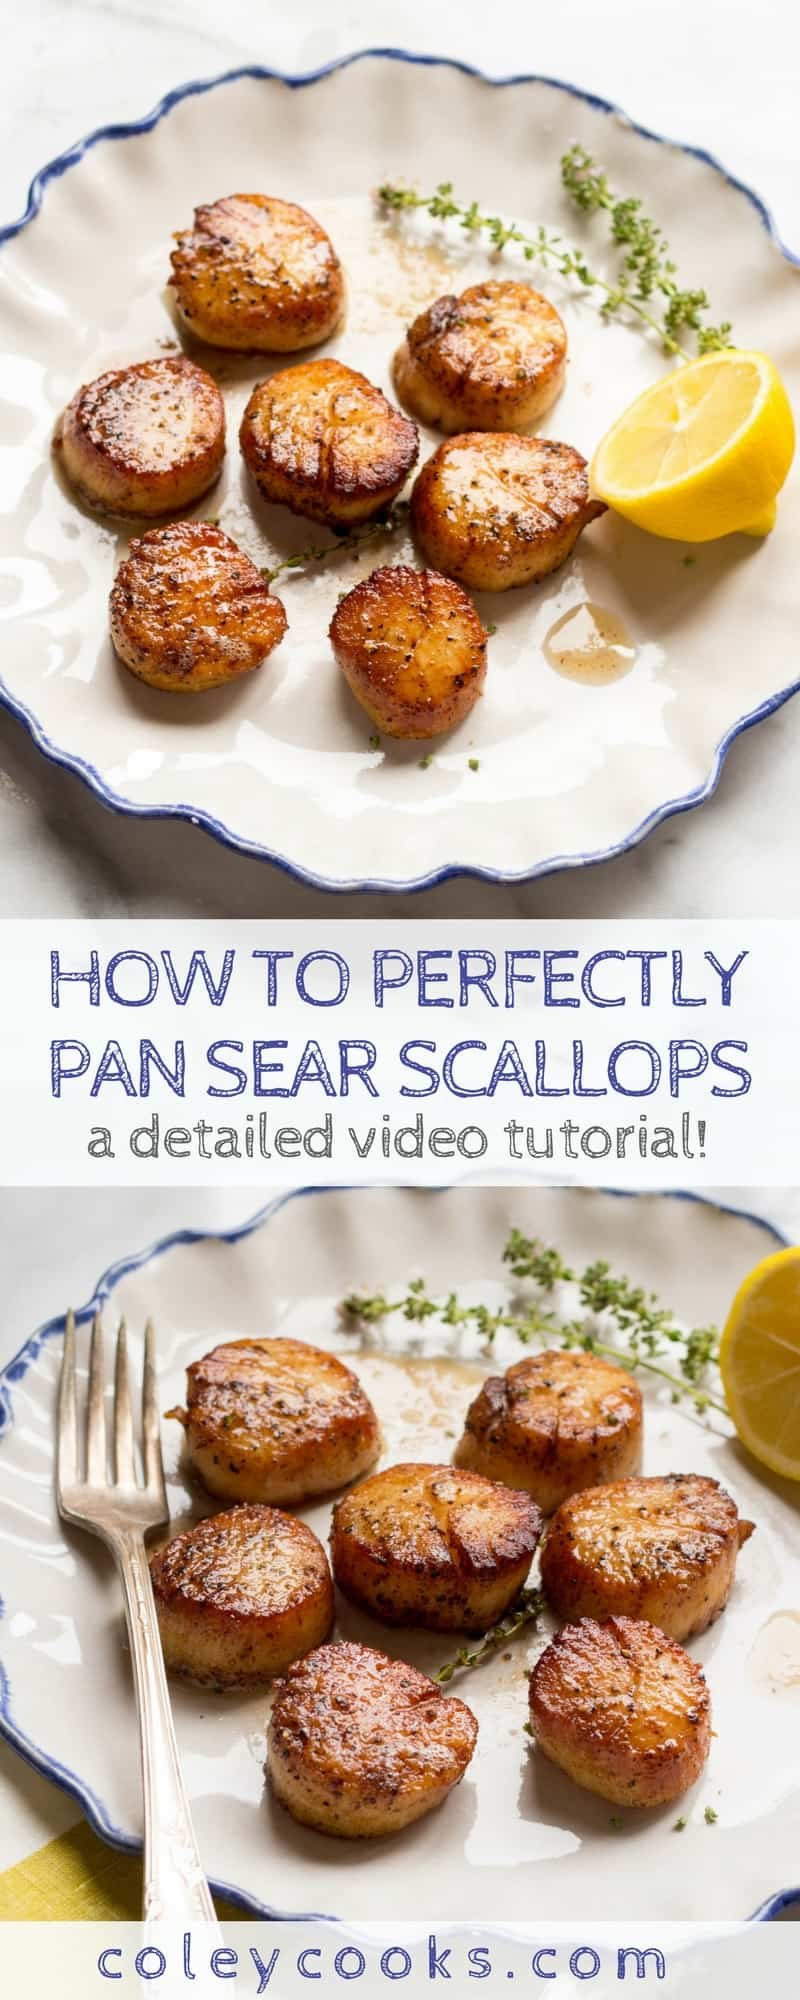 PAN SEARED SCALLOPS   Easy video tutorial on how to perfectly pan sear scallops! This simple technique produces scallops that are browned and caramelized on the outside, tender and perfectly cooked in the middle. #paleo #seafood #glutenfree   ColeyCooks.com